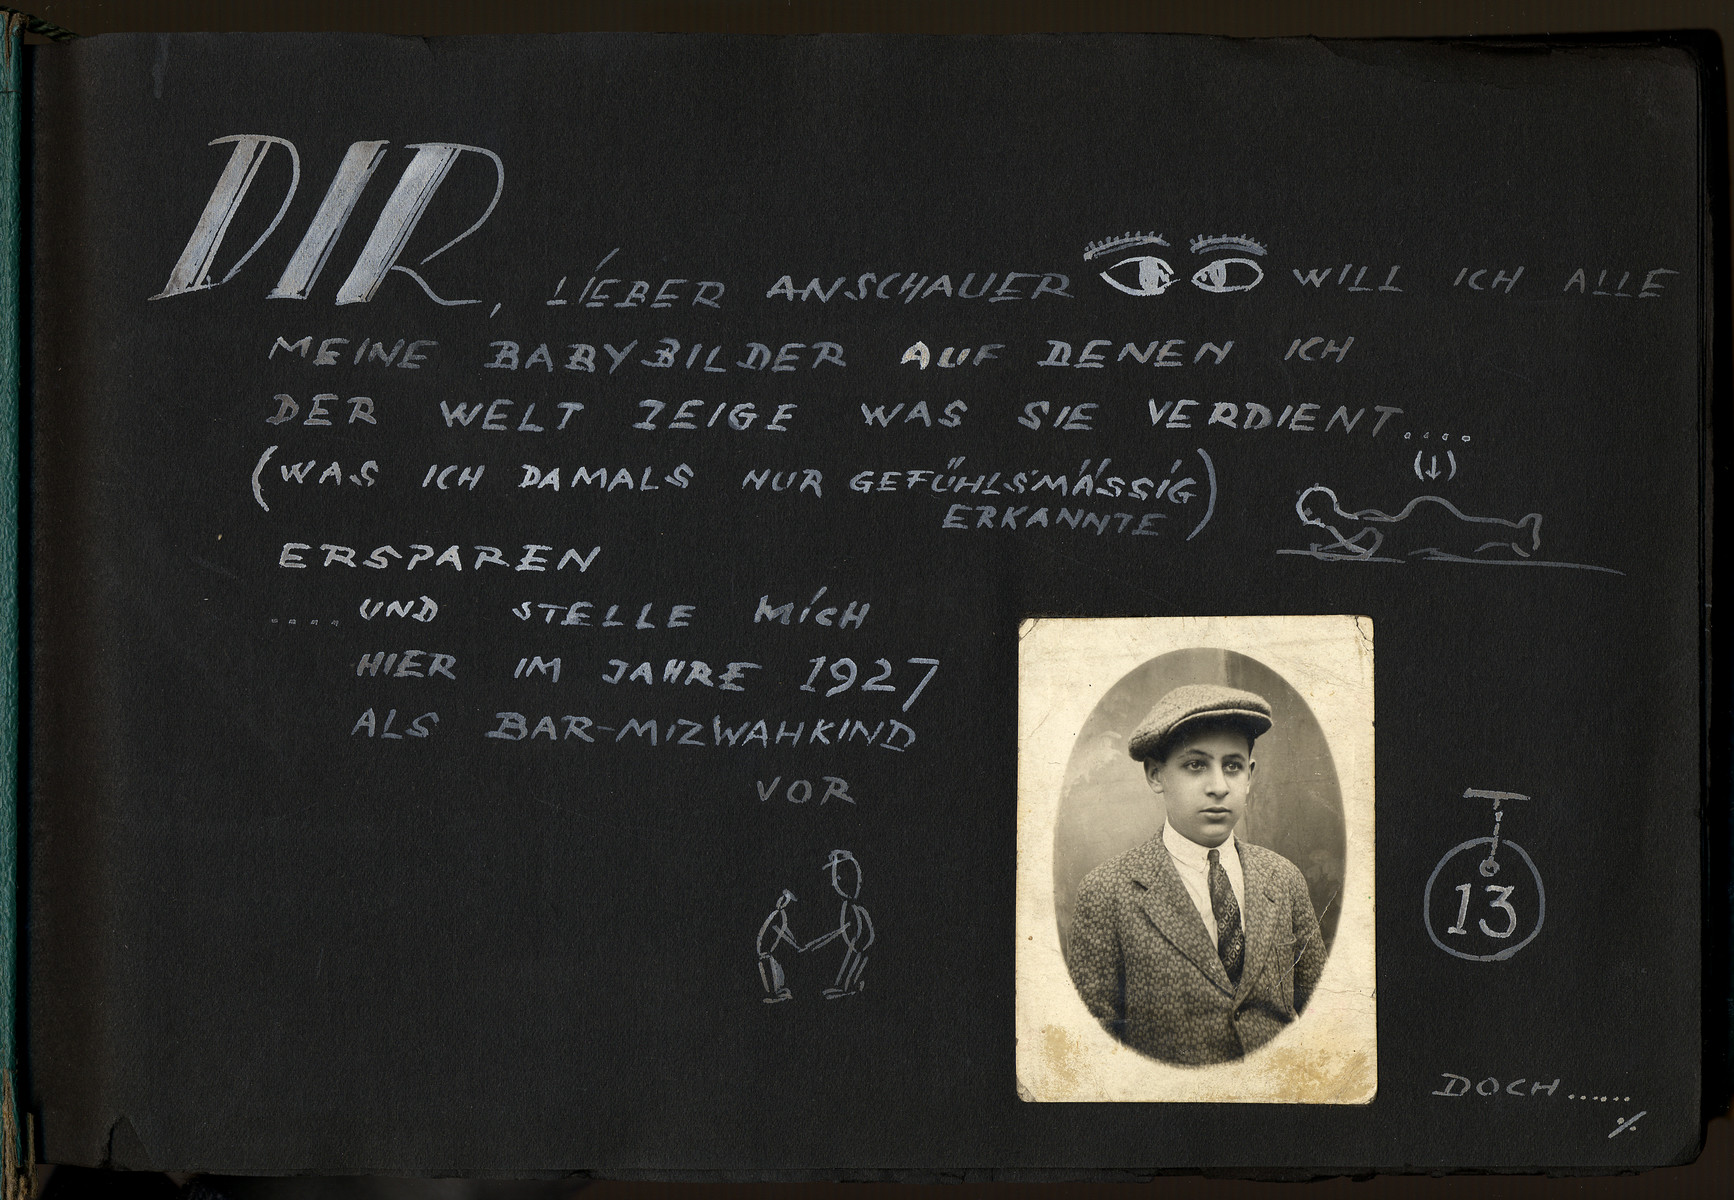 "Page from the photo album of Otto Schenkelbach showing him as 13 year-old boy around the time of his bar-mitzvah.    The album page is fille by a written explanation that reads, ""Dir, Lieber Anschauer will ich alle meine Babybilder auf denen ich der Welt Zeige was sie verdient...(was ich damals nur gefuelsmaessig erkannte) ersparen...und stelle mich hier im Jahre 1927 als Bar-Mizwahkind vor"" [To you, dear viewers, I want to spare all of my baby pictures upon which I show the world what she earned (what I  only emotionally saw) and I have put here a picture of myself as a Bar Mitzvah boy in 1927."